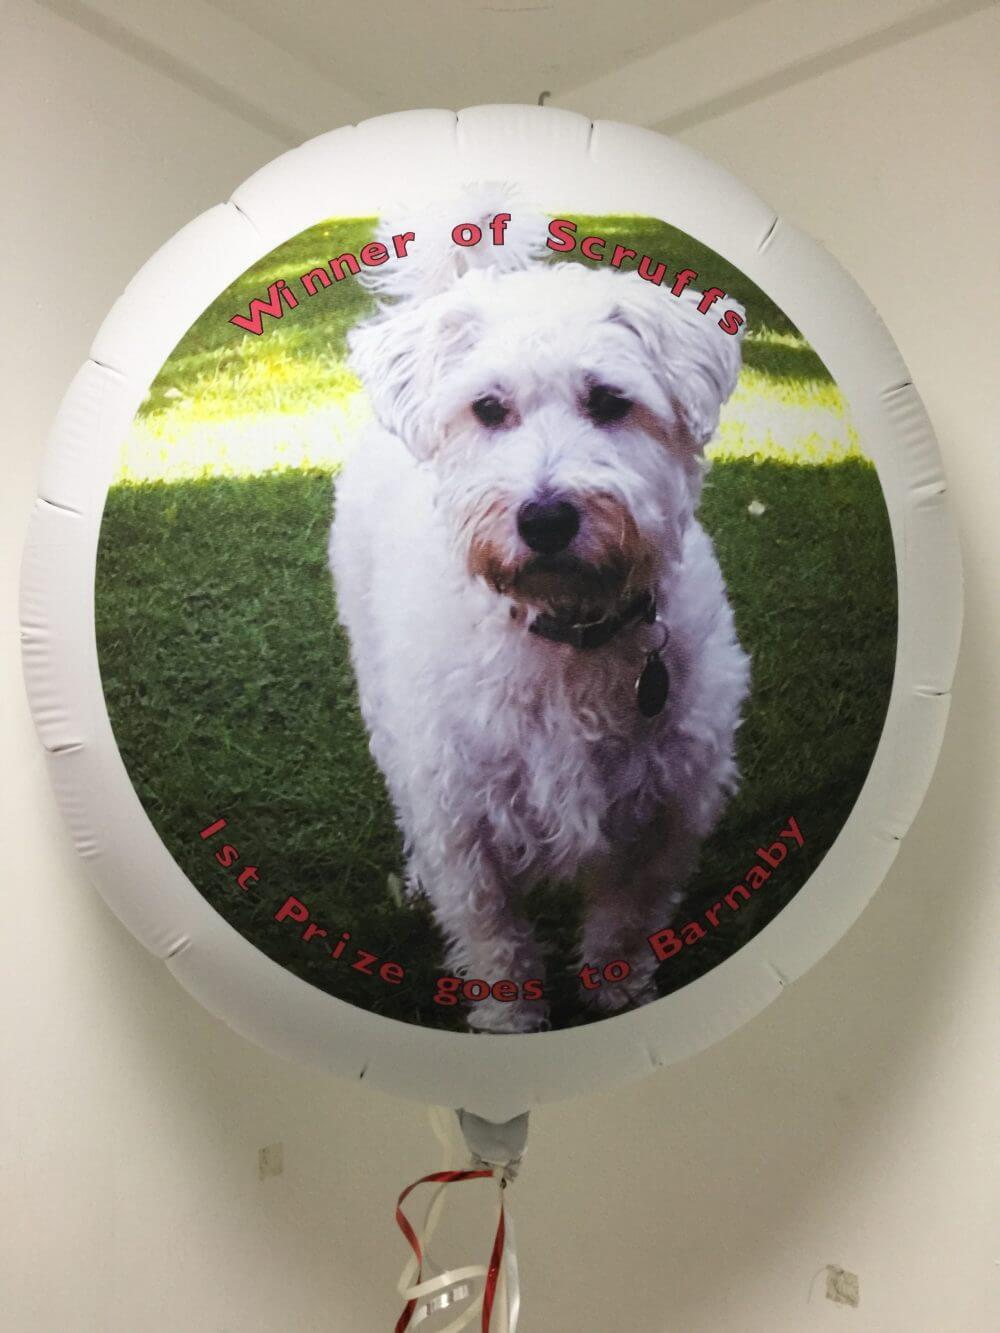 Barnaby on a personalised balloon